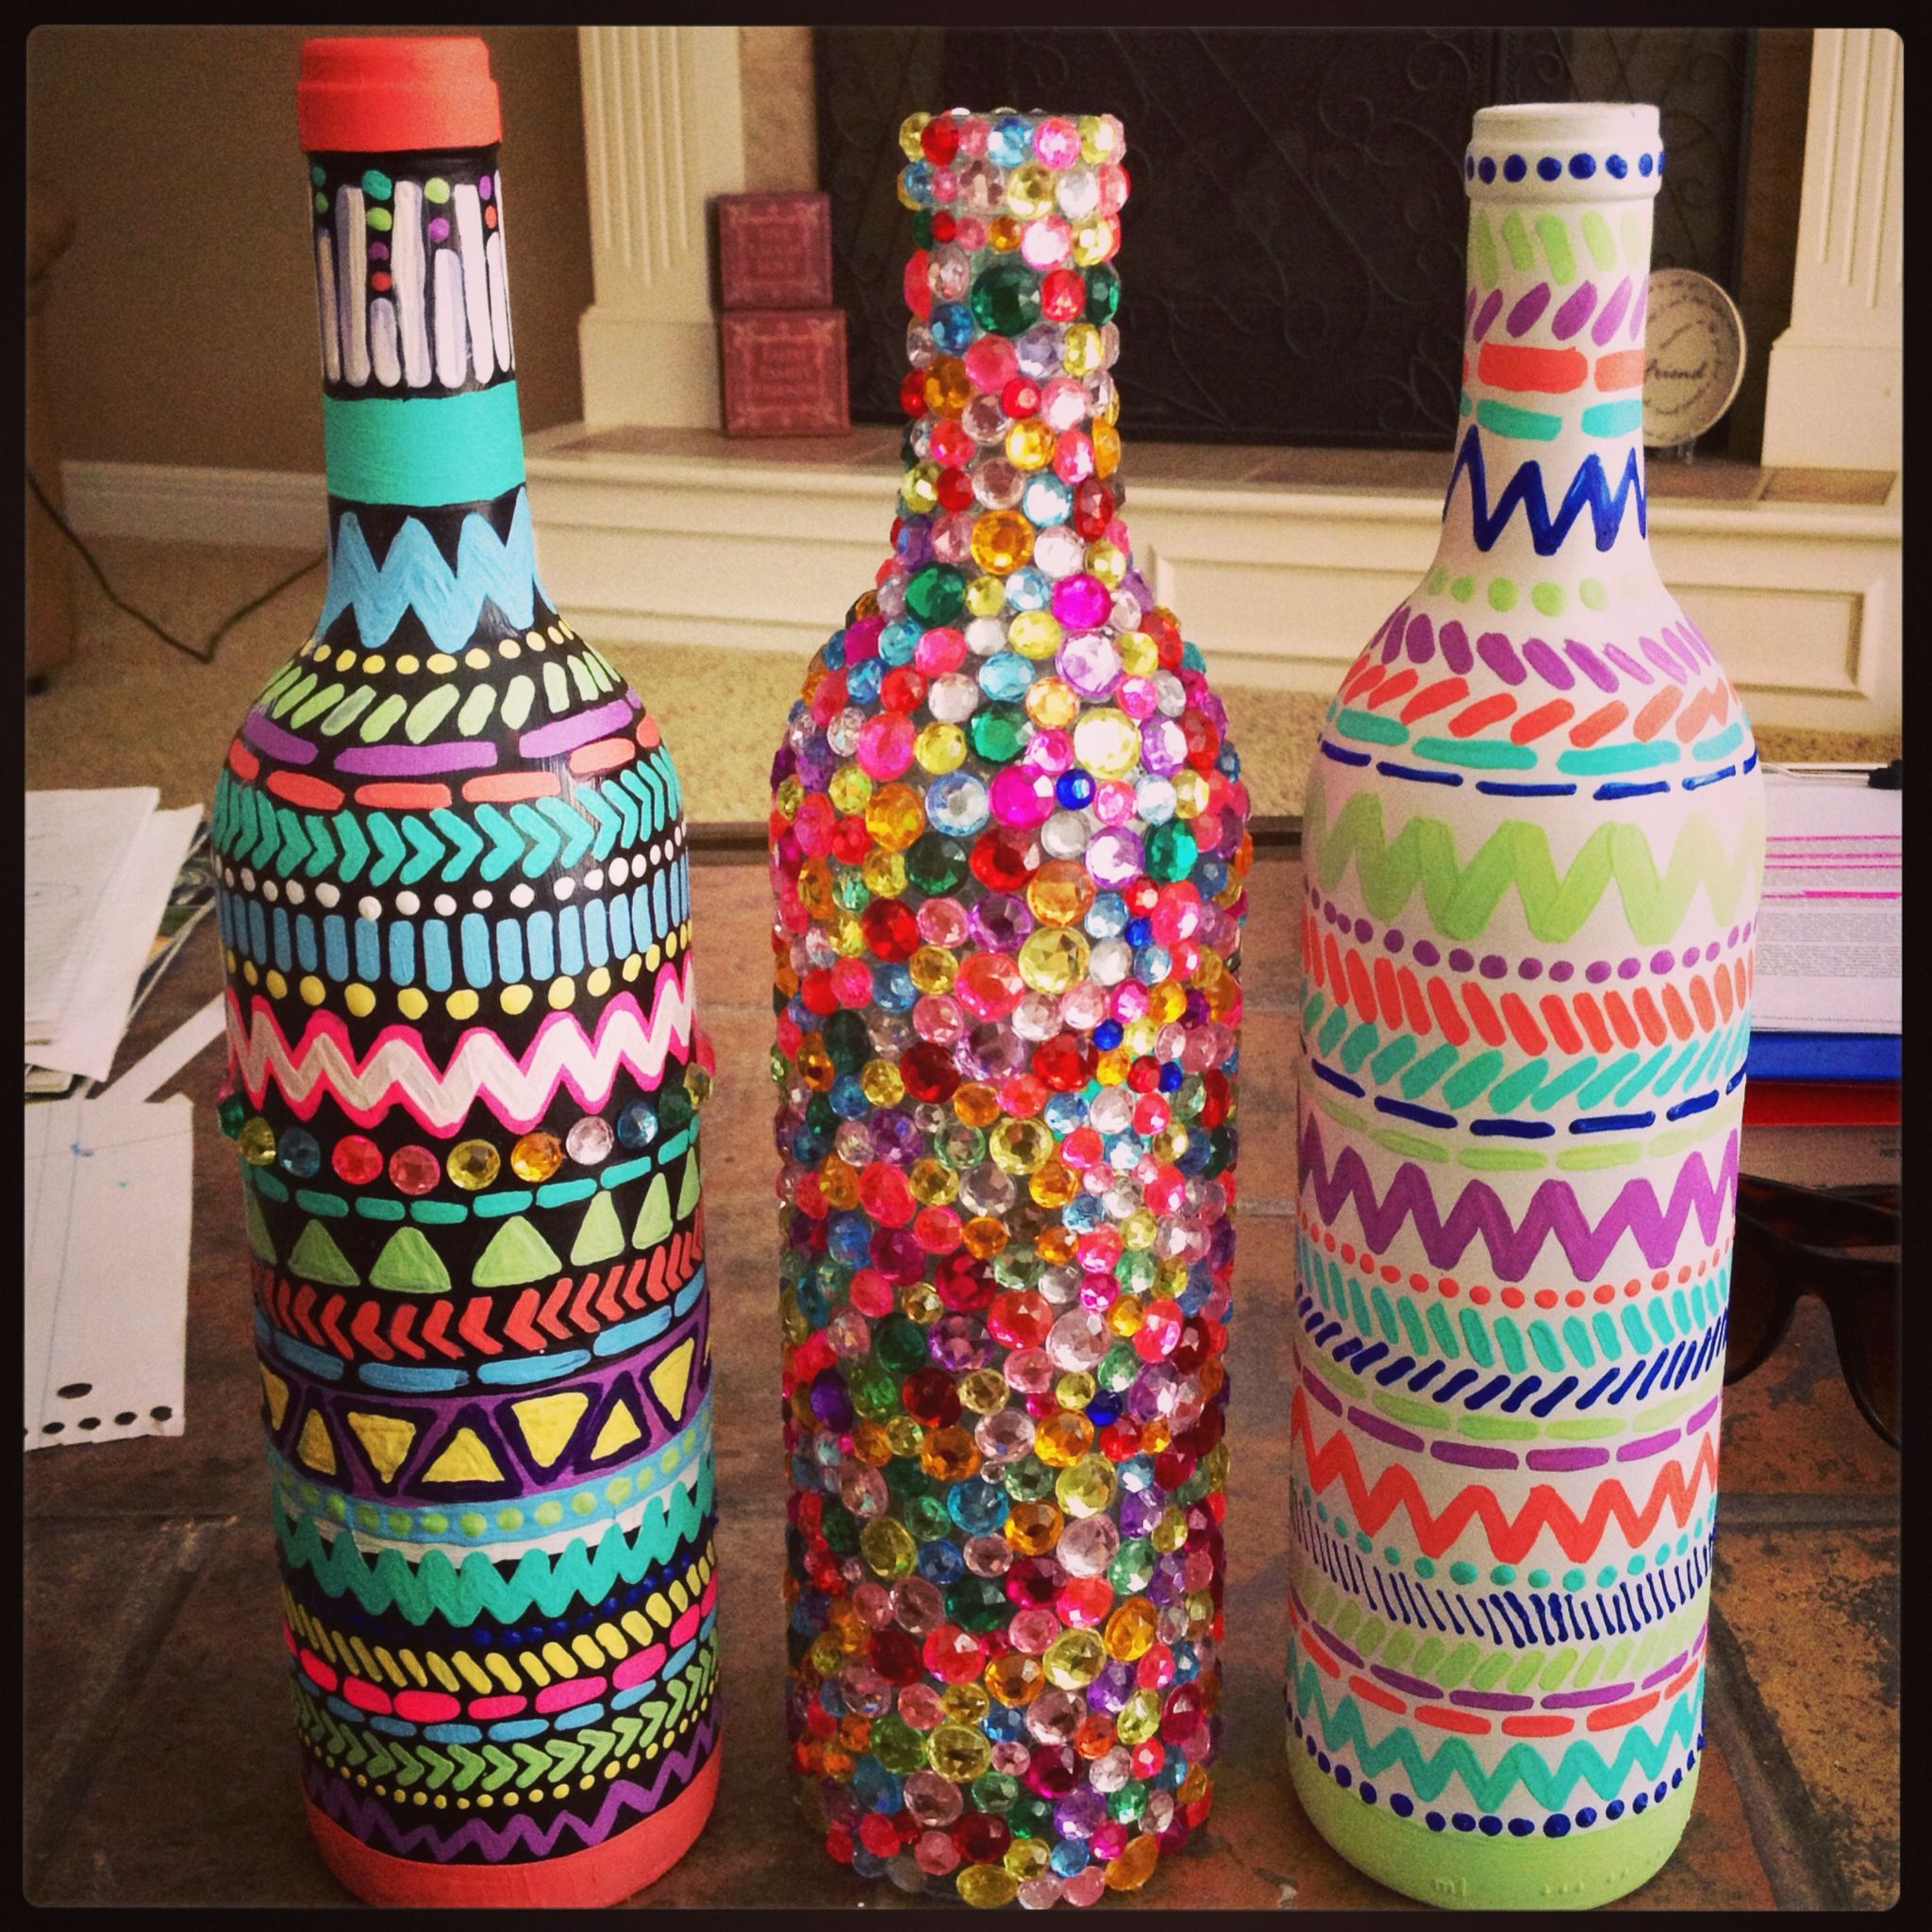 What to do with empty wine bottles - Diy Decorated Wine Bottles Sam Taylor Gaukin I Think We Need To Start